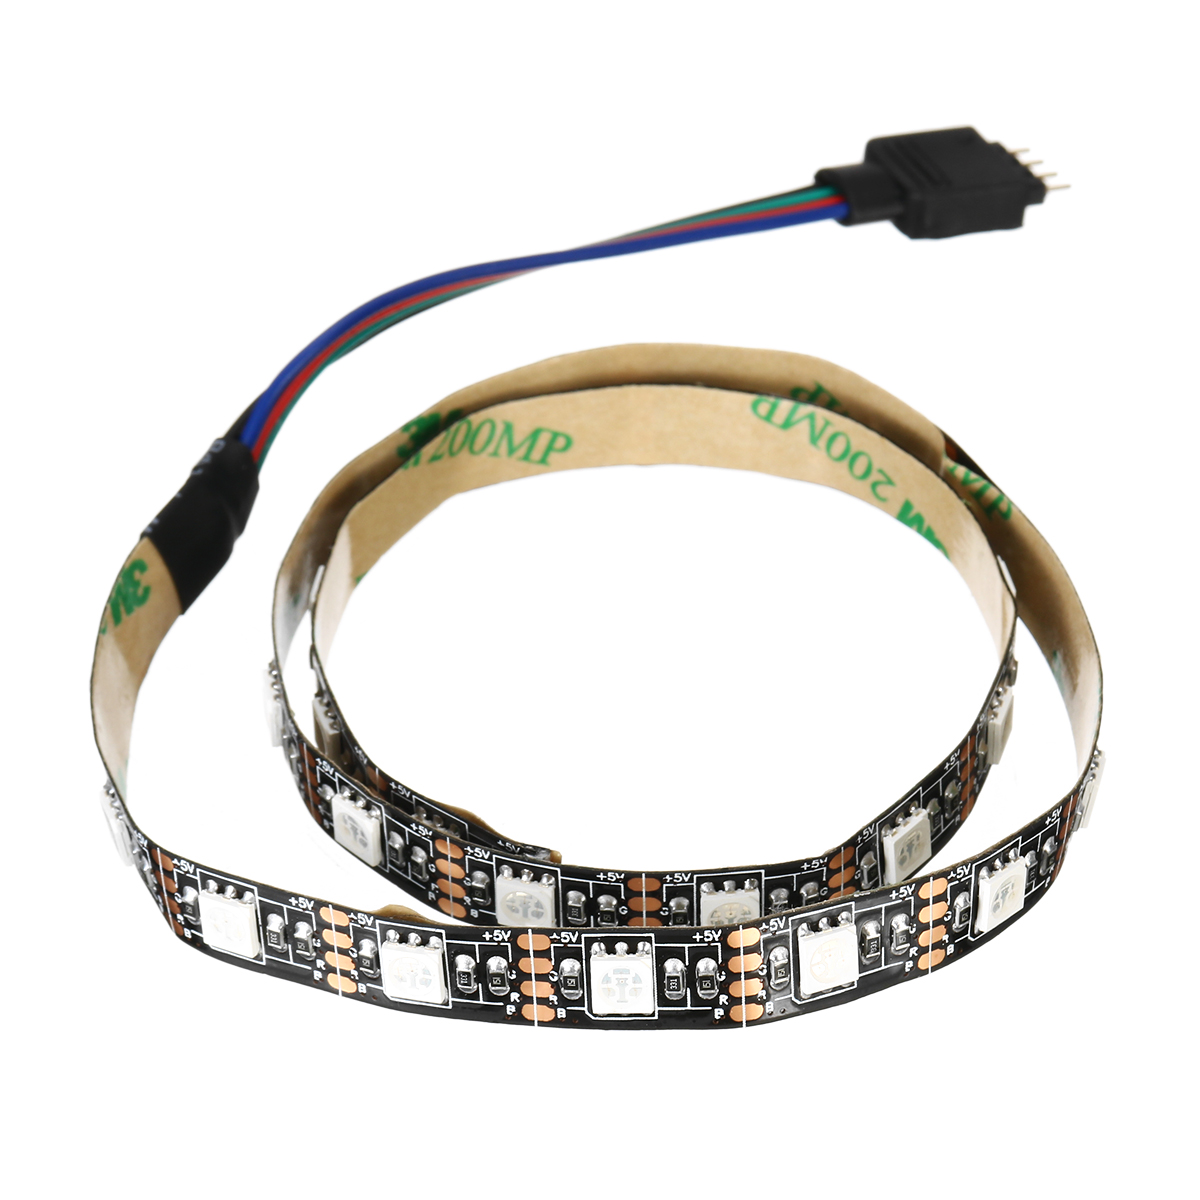 0.5/1/3/5M 5050 SMD RGB LED Strip Light Non-waterproof Indoor Lamp Home Decor + 44 Key Remote Control DC5V